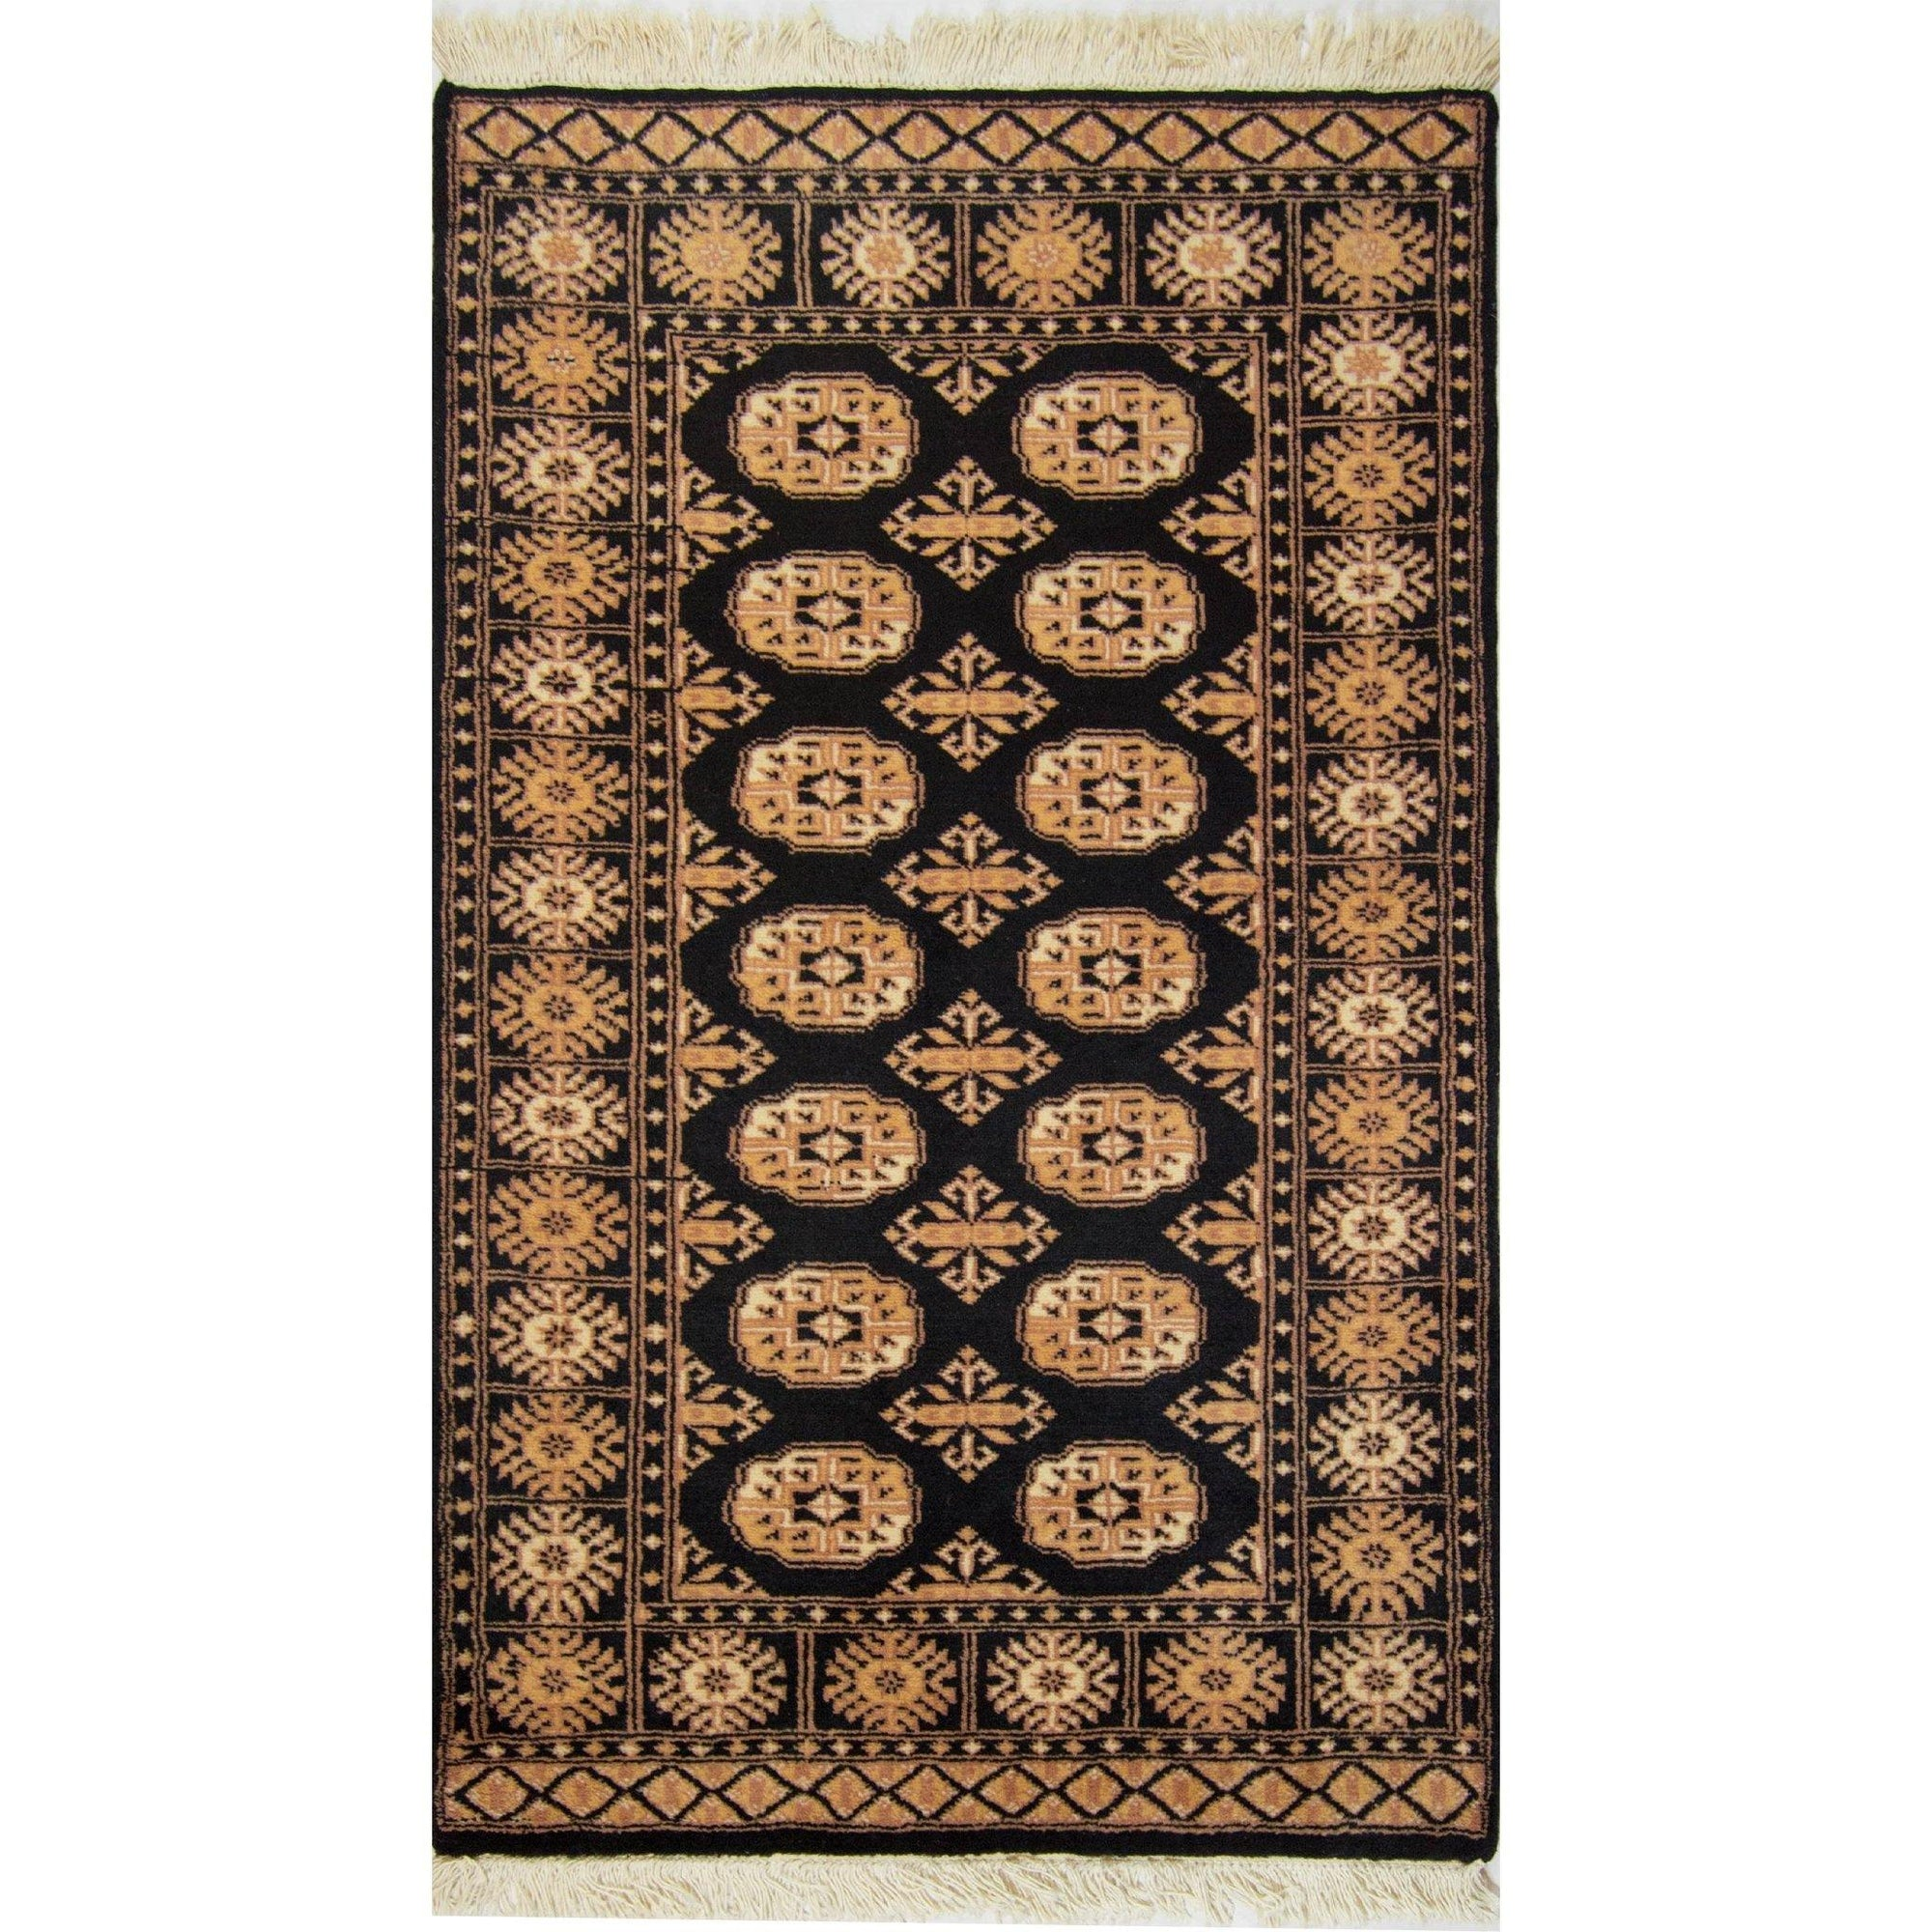 Fine Hand-knotted Tribal Wool Bokhara Rug 91cm x 151cm Persian-Rug | House-of-Haghi | NewMarket | Auckland | NZ | Handmade Persian Rugs | Hand Knotted Persian Rugs